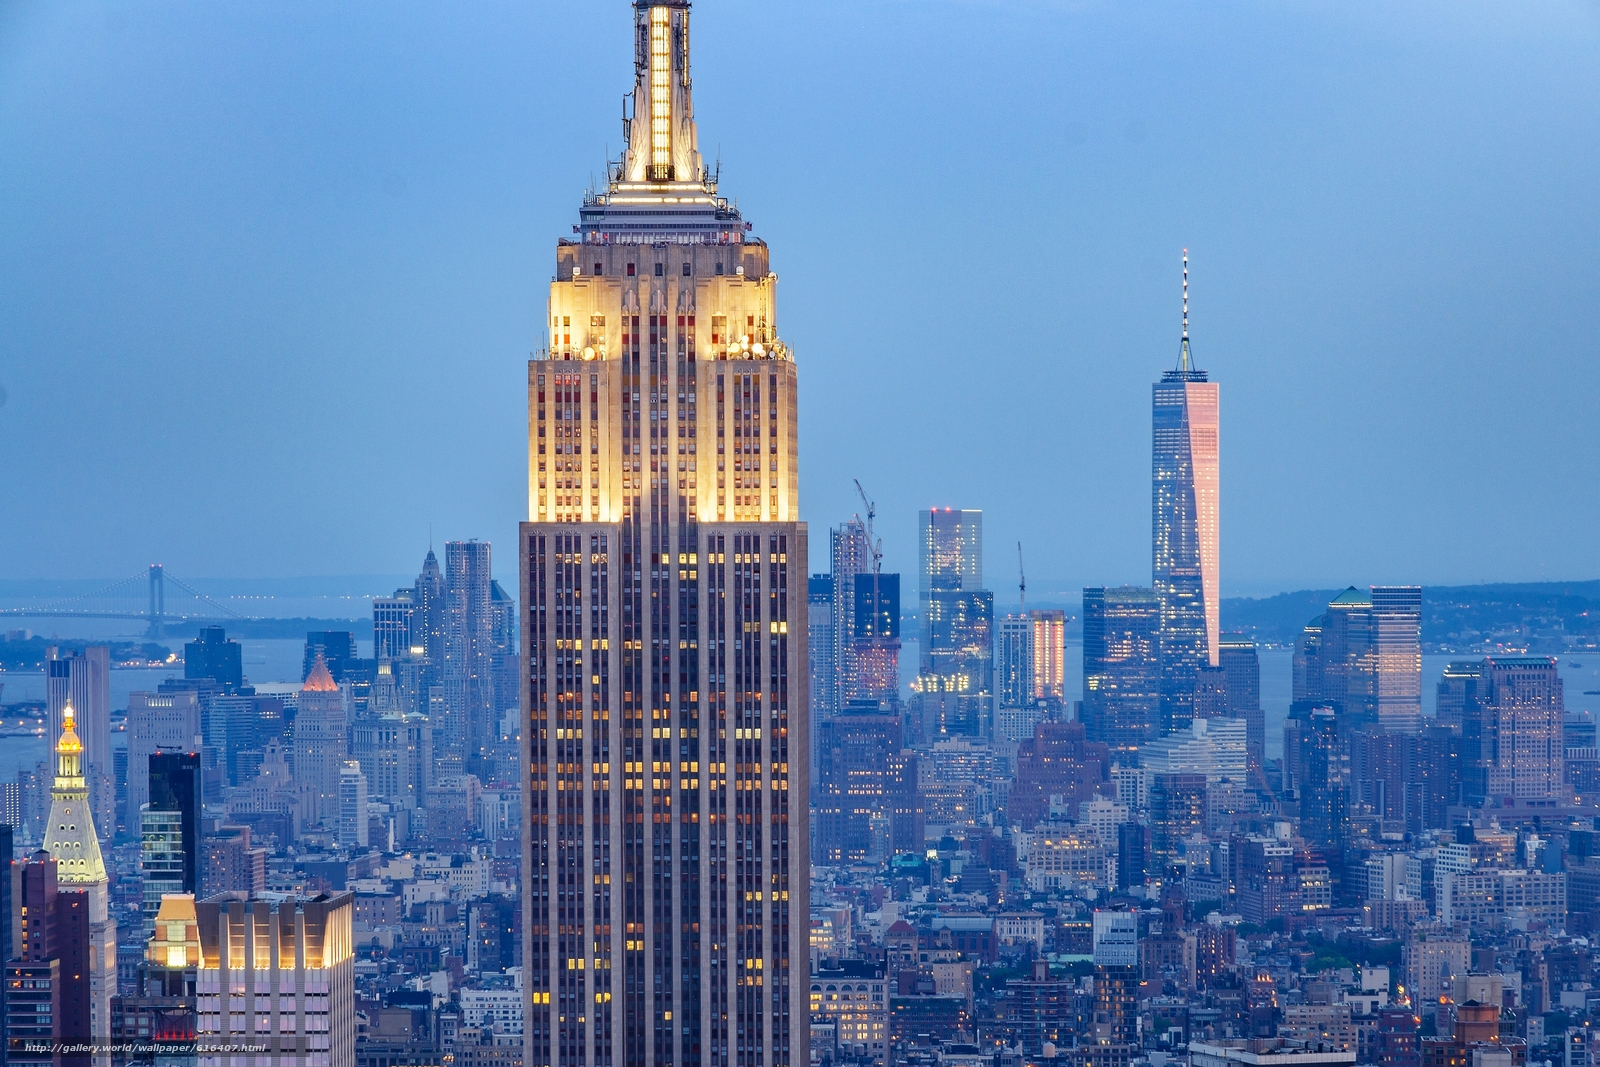 Download wallpaper Empire State Building, Manhattan, New York City, The Empire State Building